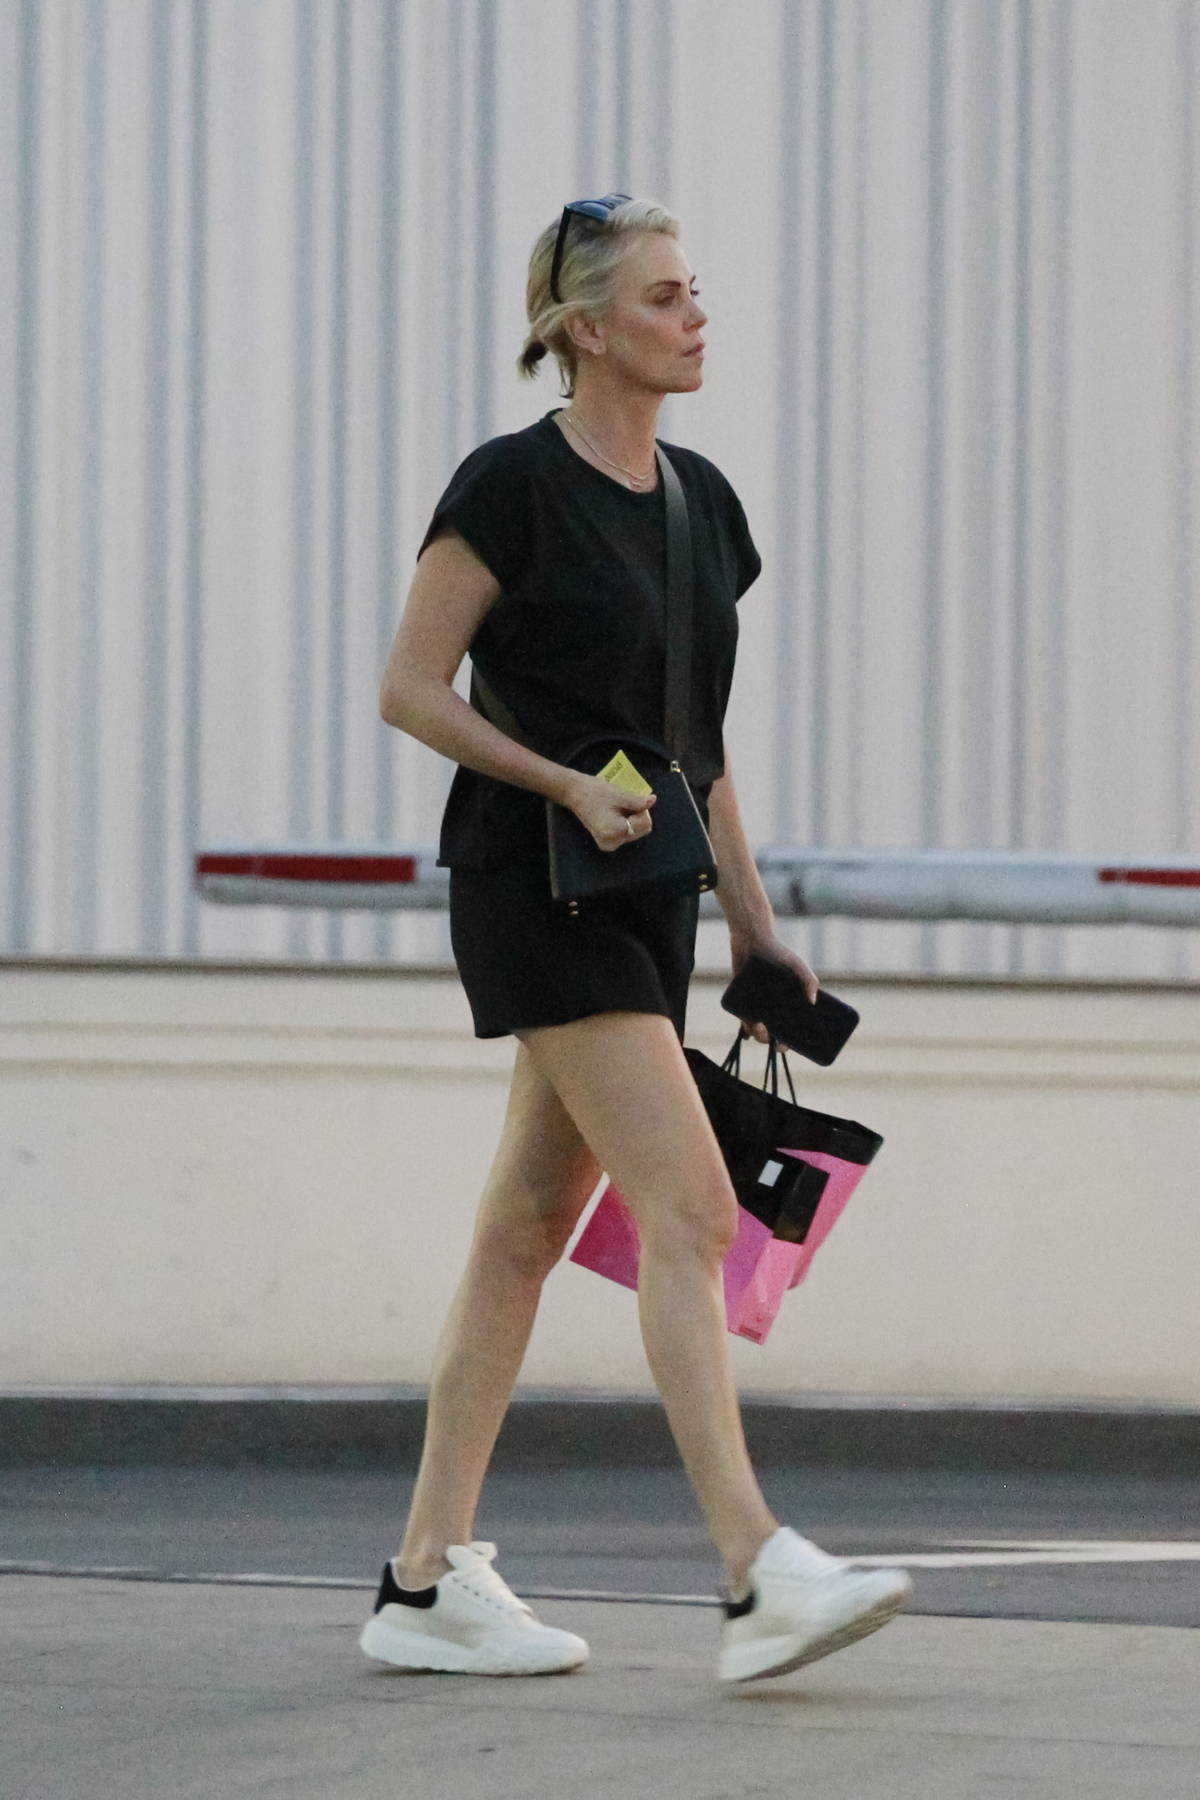 Charlize Theron wears a black tee and shorts as she leaves Mr. Chow restaurant in Beverly Hills, California